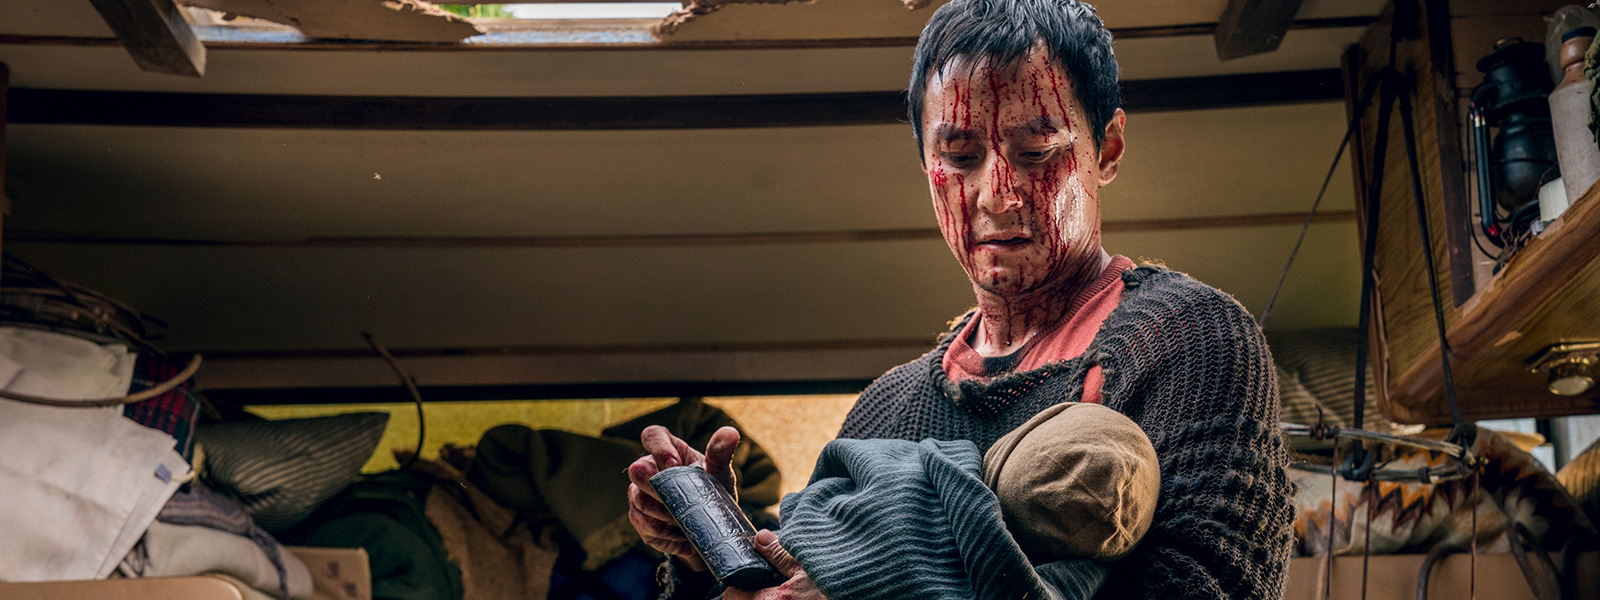 into-the-badlands-301-sunny-wu-bloody-henry-800×600